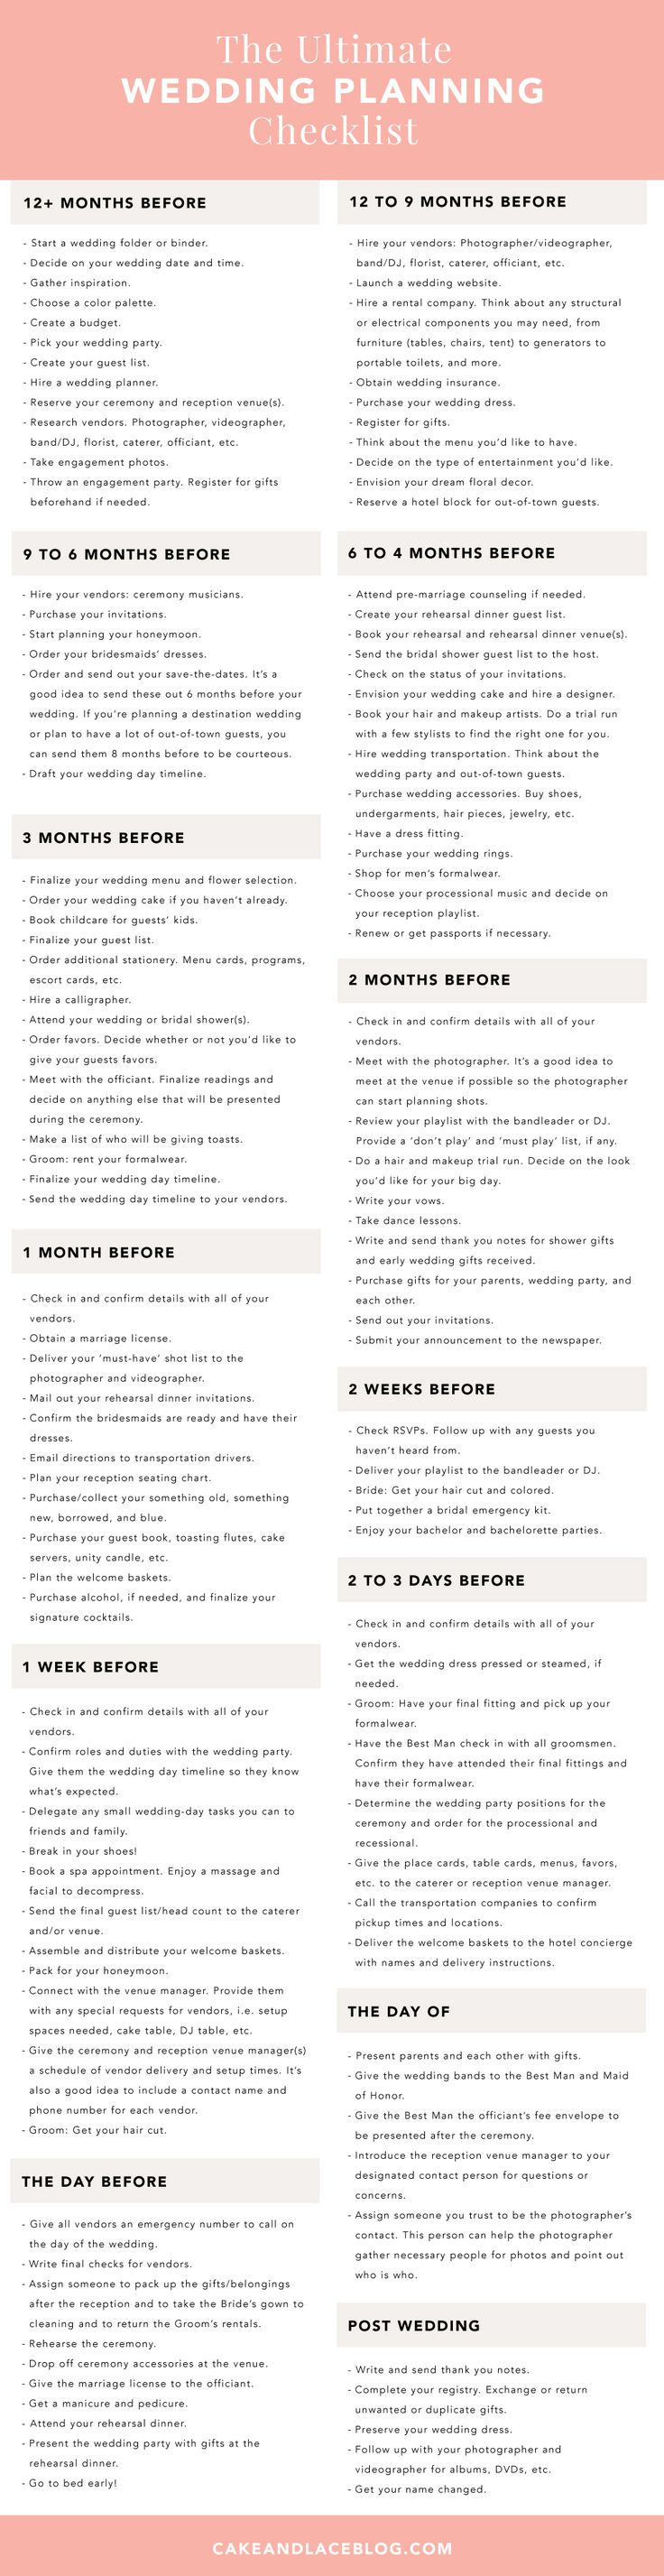 Best 25+ Wedding planning checklist ideas on Pinterest | Wedding ...